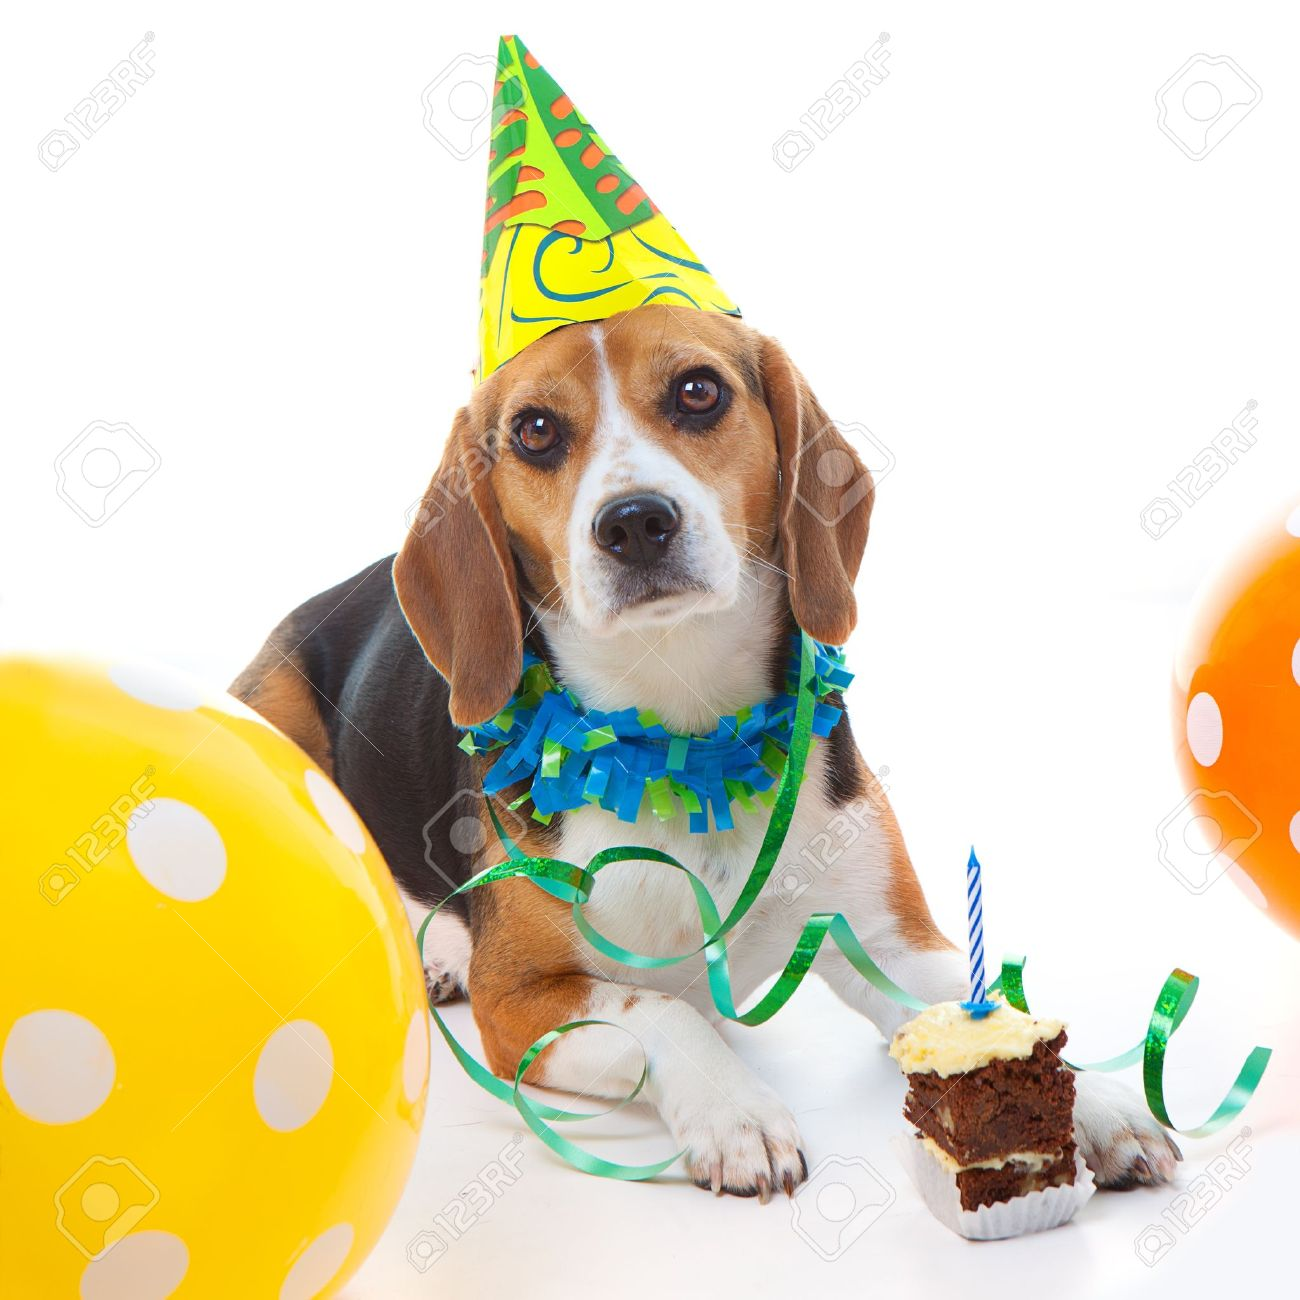 Pet Beagle Dog First Birthday Party Celebration With Cake Hat And Balloons Stock Photo